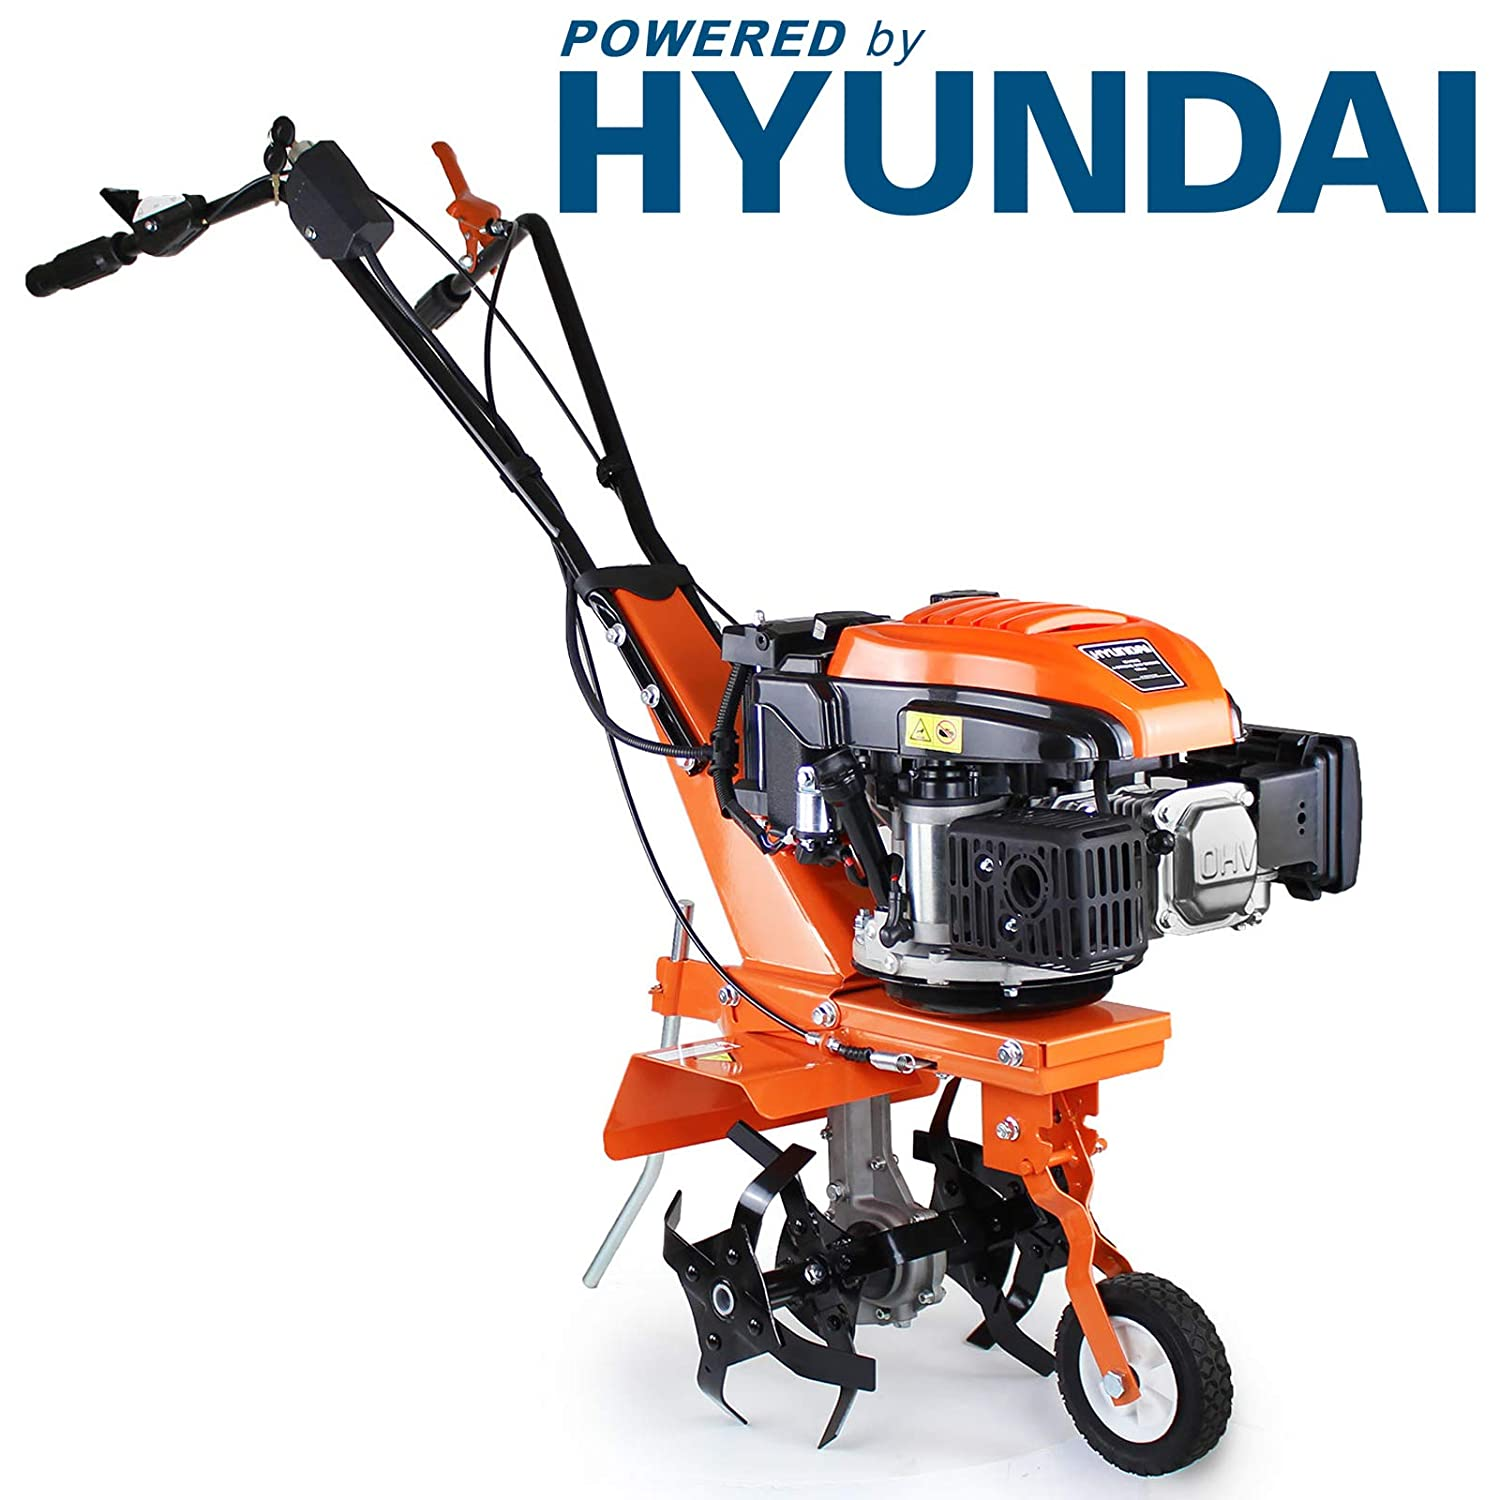 P1PE P140TE 139 cc 4 Stroke Electric Start Hyundai Powered Petrol Tiller/Rotovator, Naranja: Amazon.es: Bricolaje y herramientas